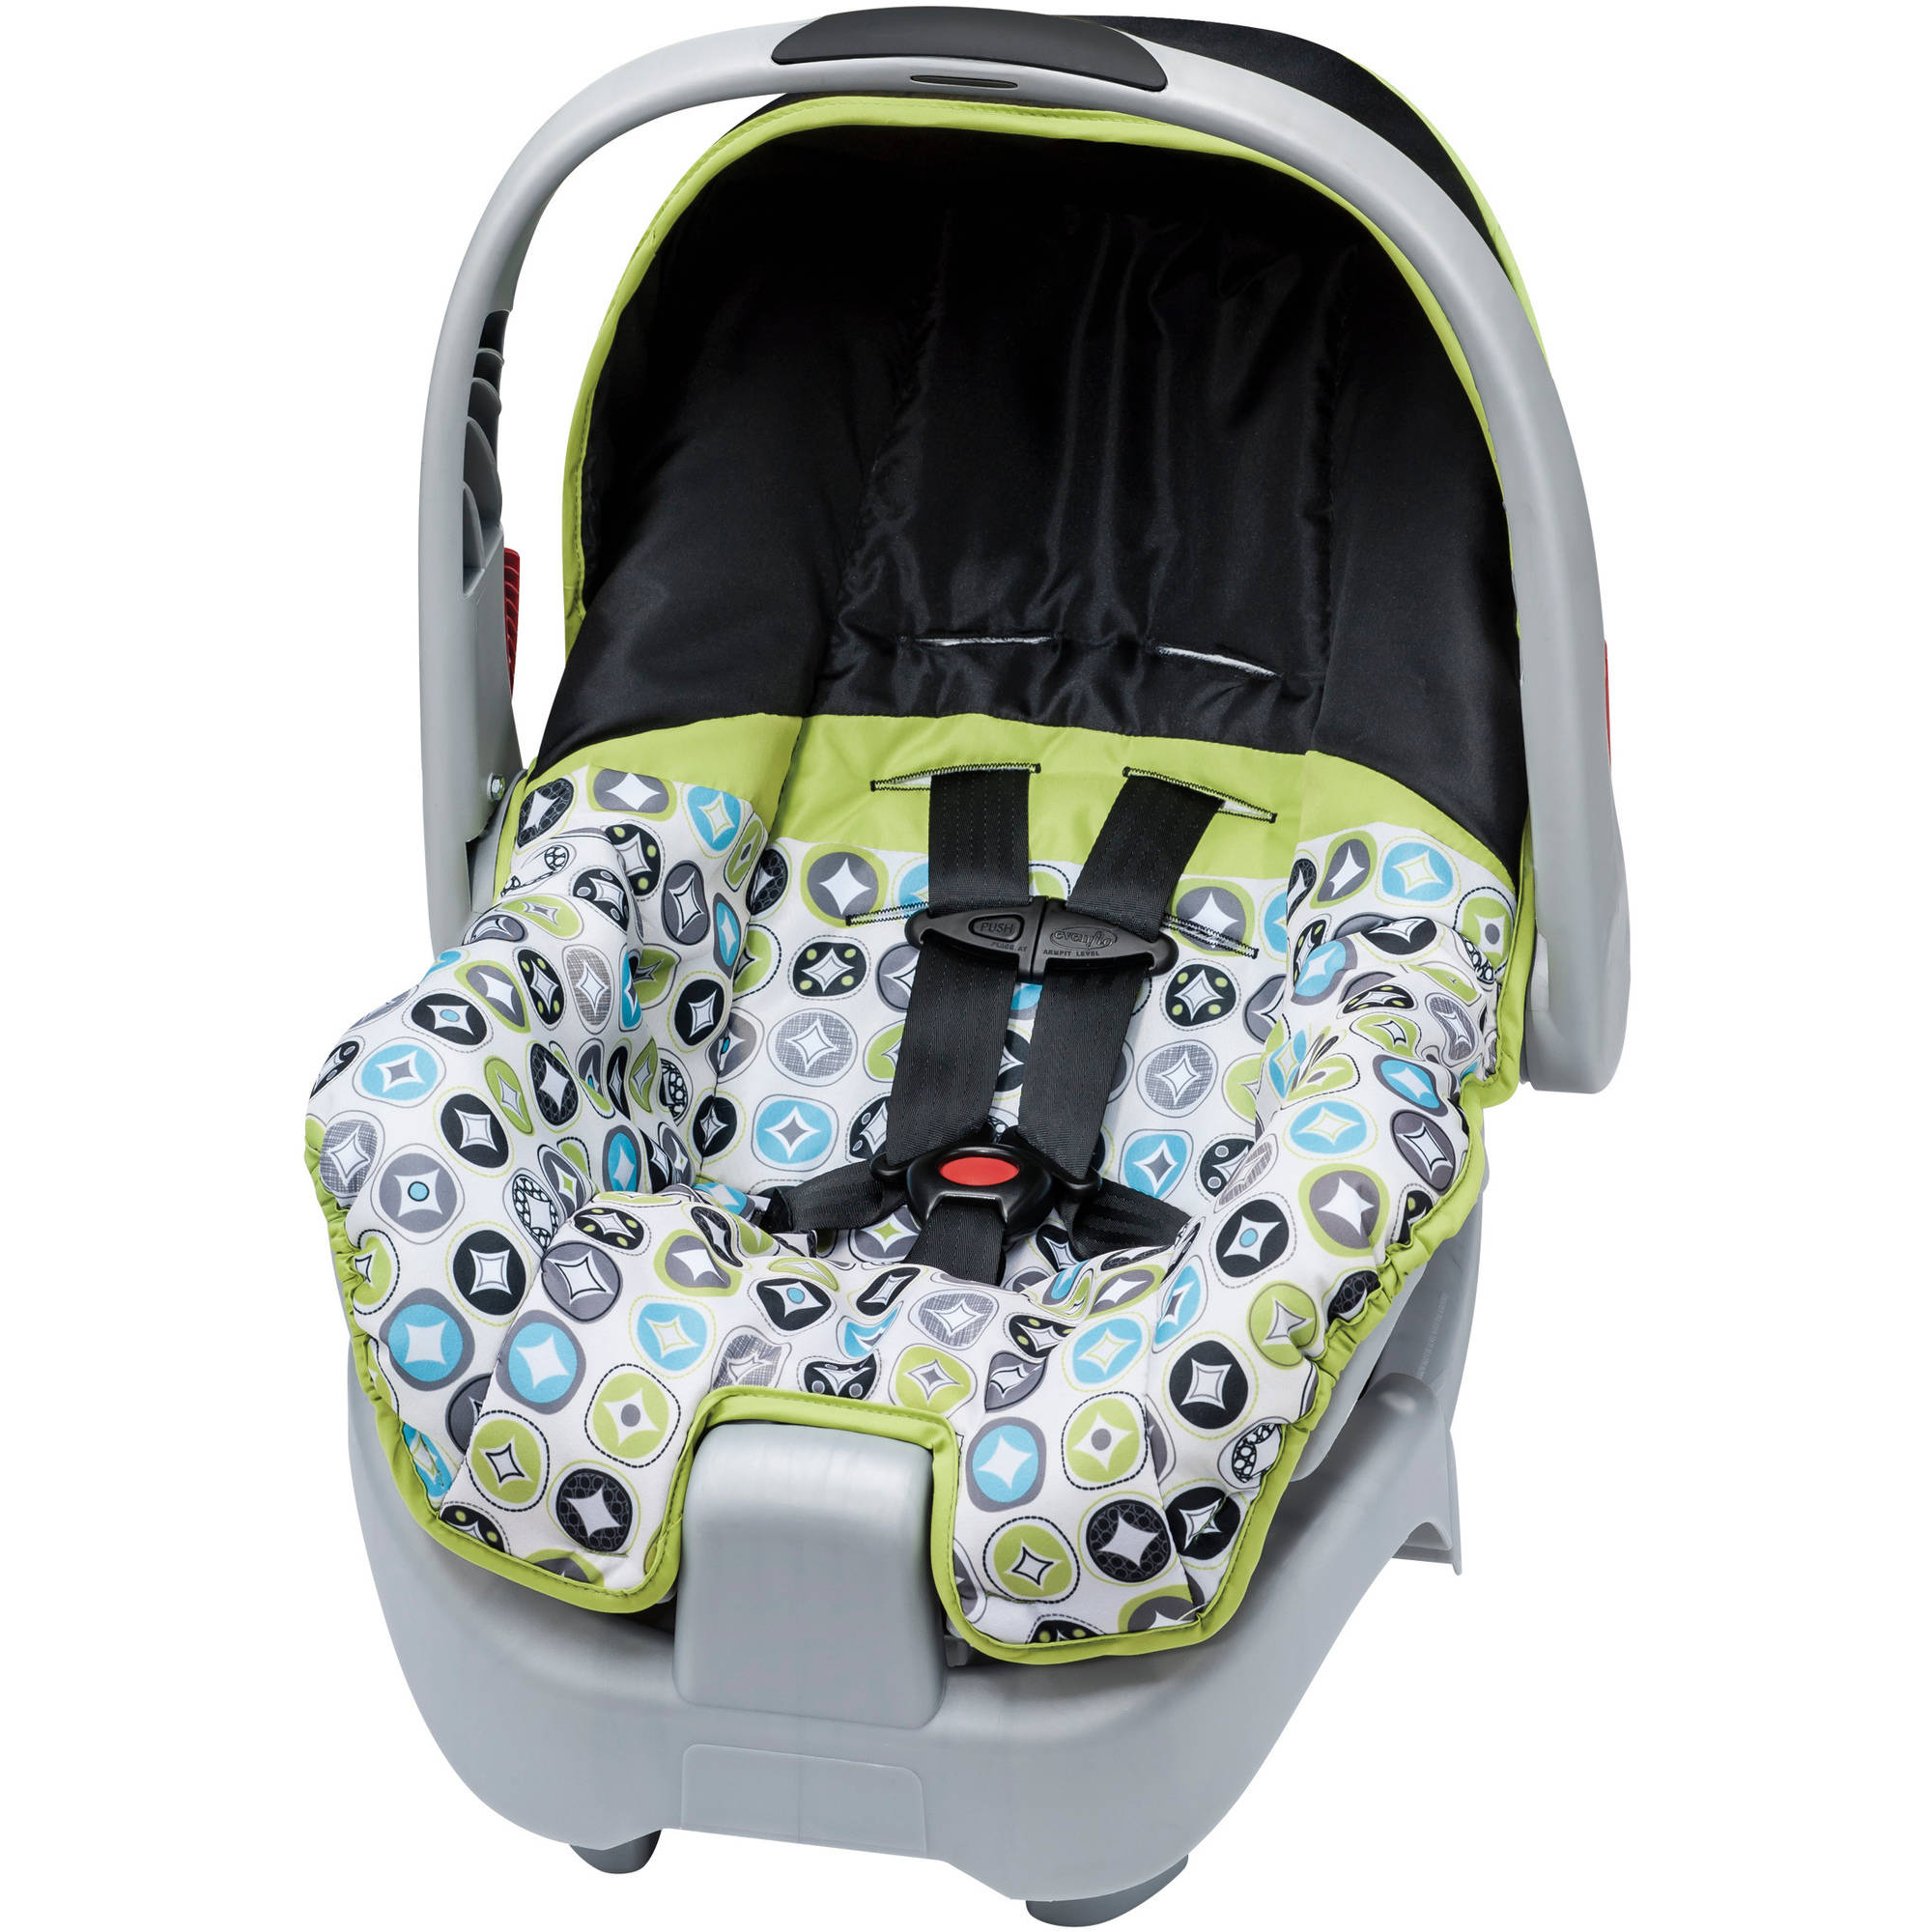 Evenflo Nurture Infant Car Seat, Covington